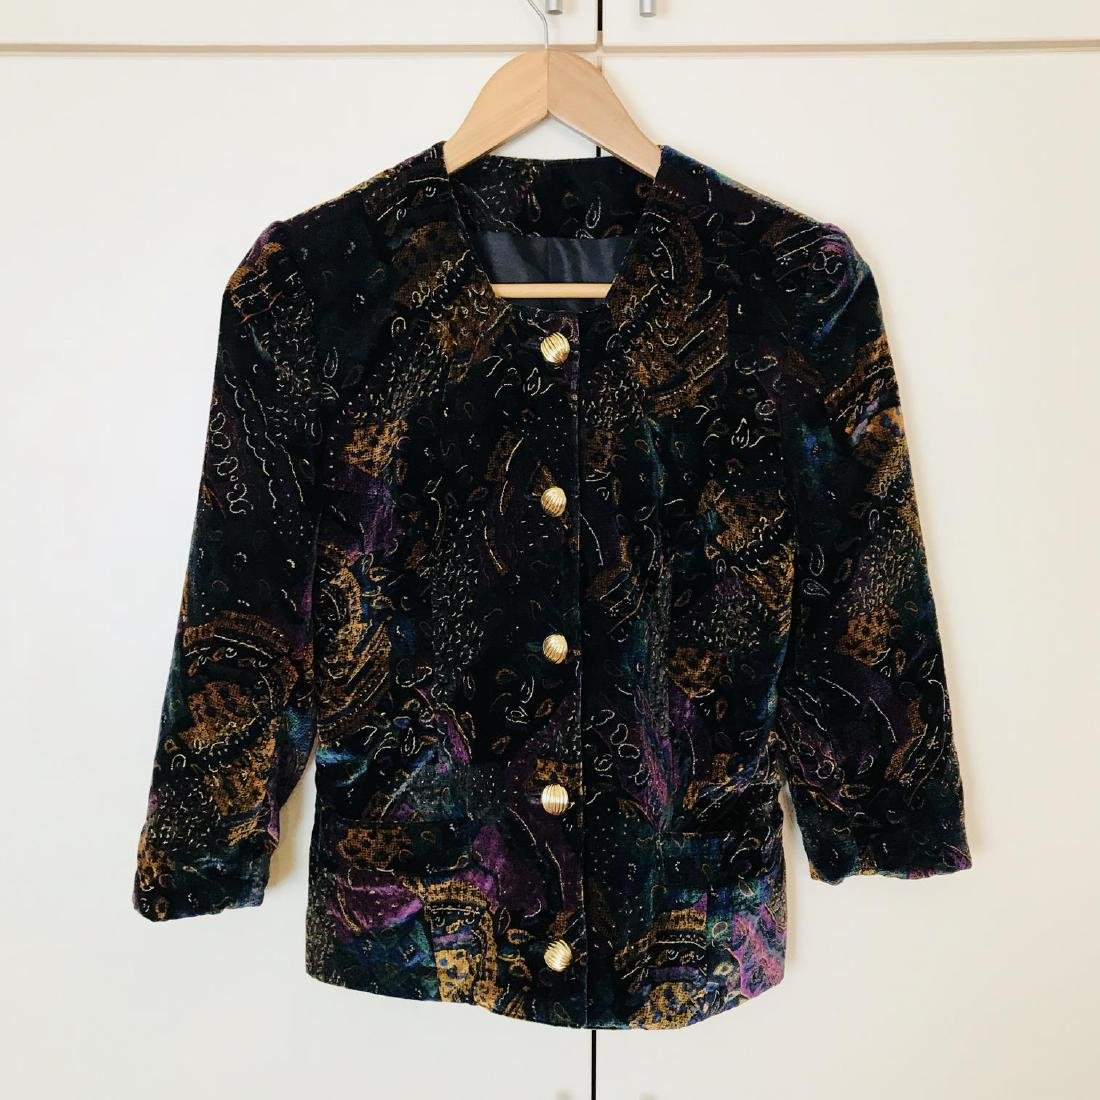 Vintage Women's Jacket Size US 10 EUR 40